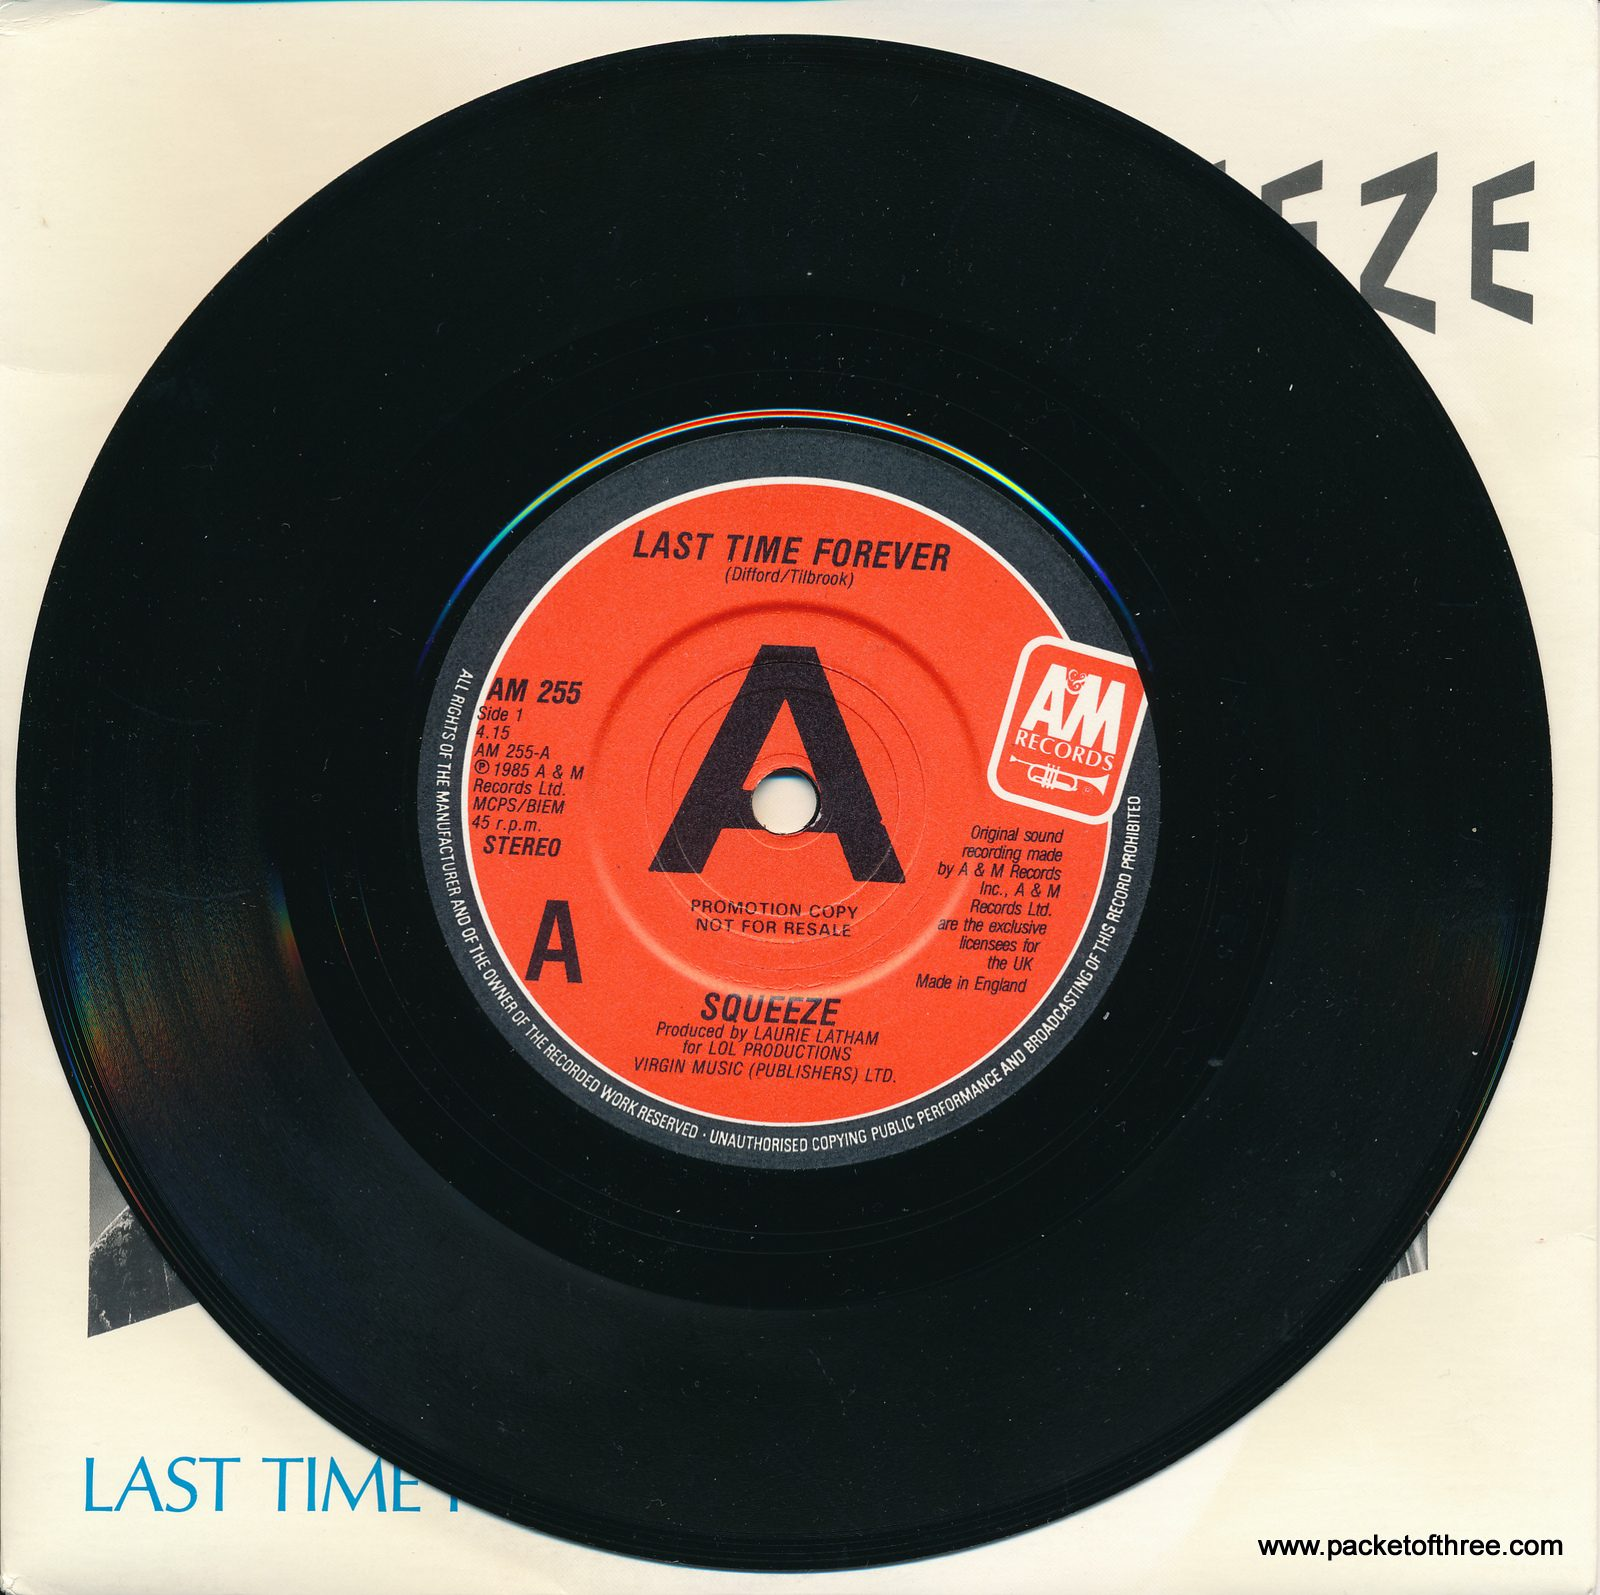 """Squeeze - Last Time Forever - UK - 7"""" - promotional copy - picture sleeve"""